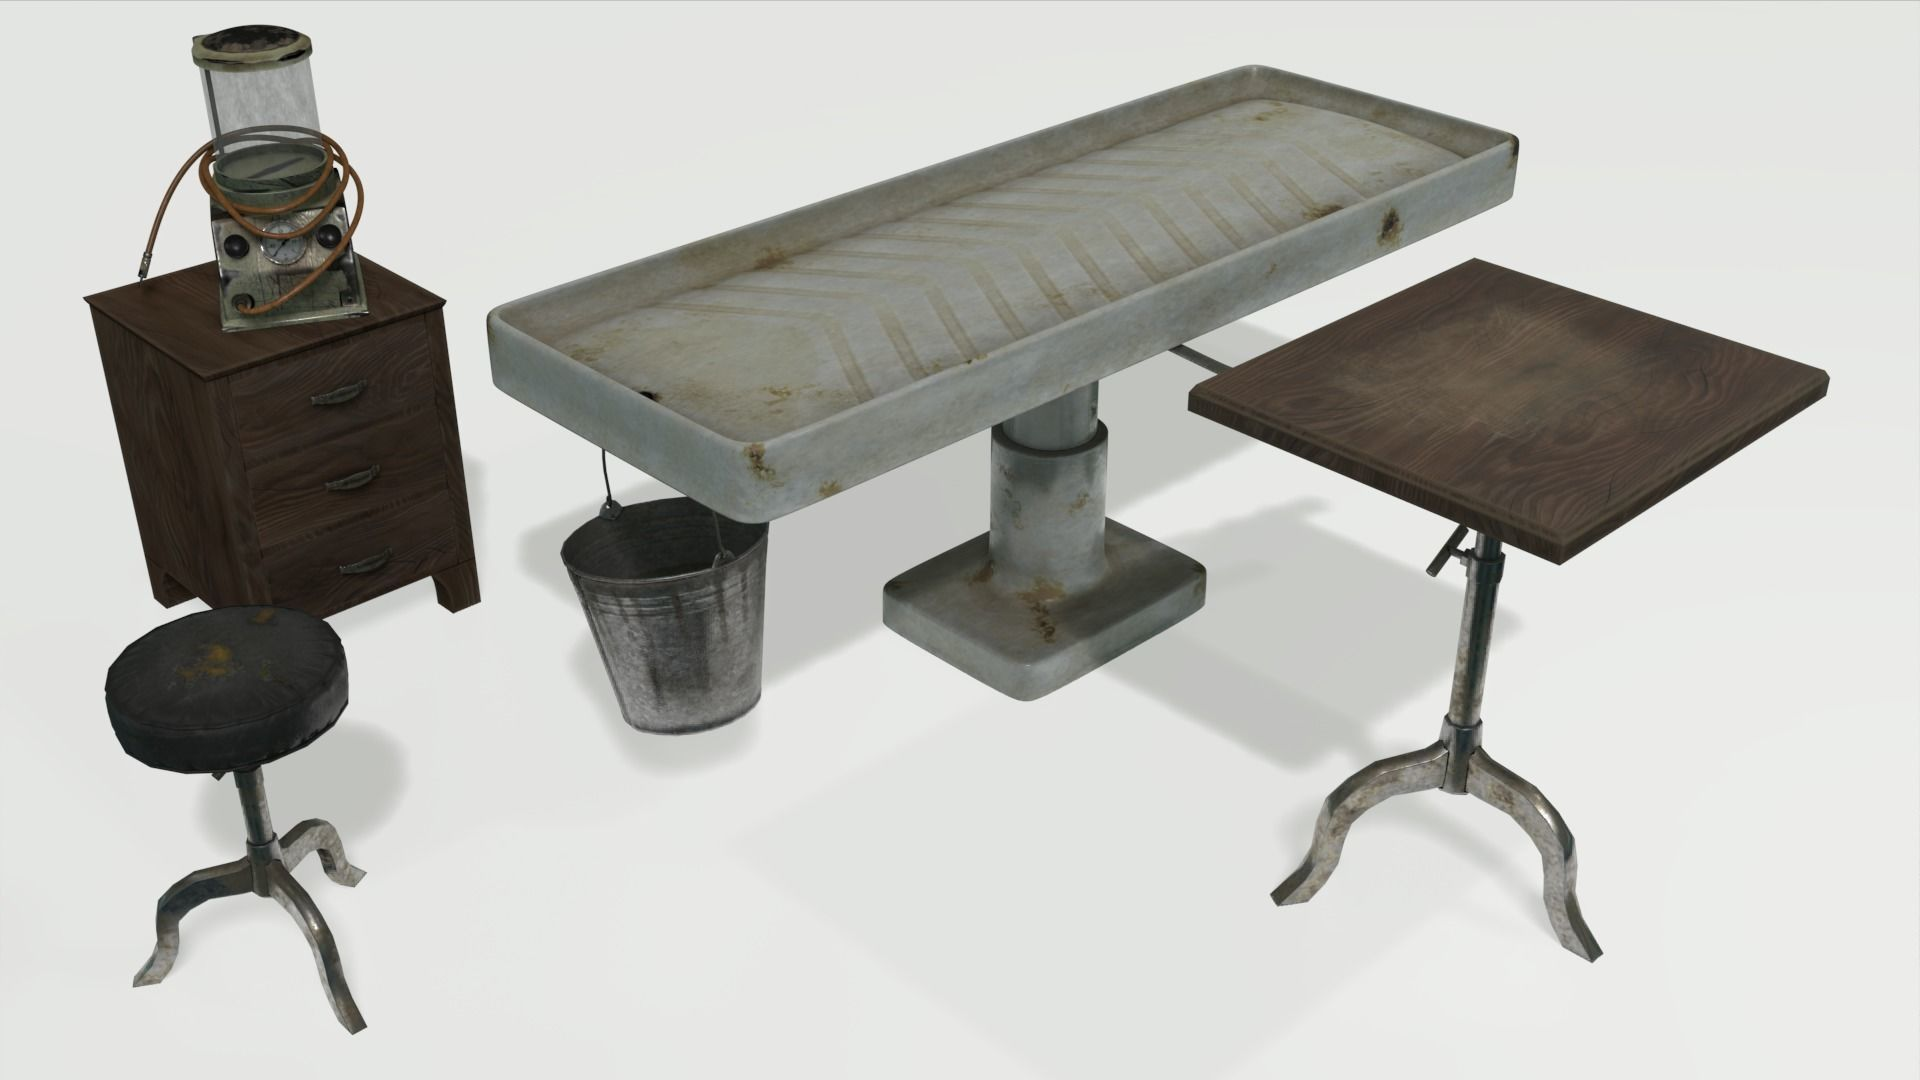 Low Poly Vintage Mortuary Items